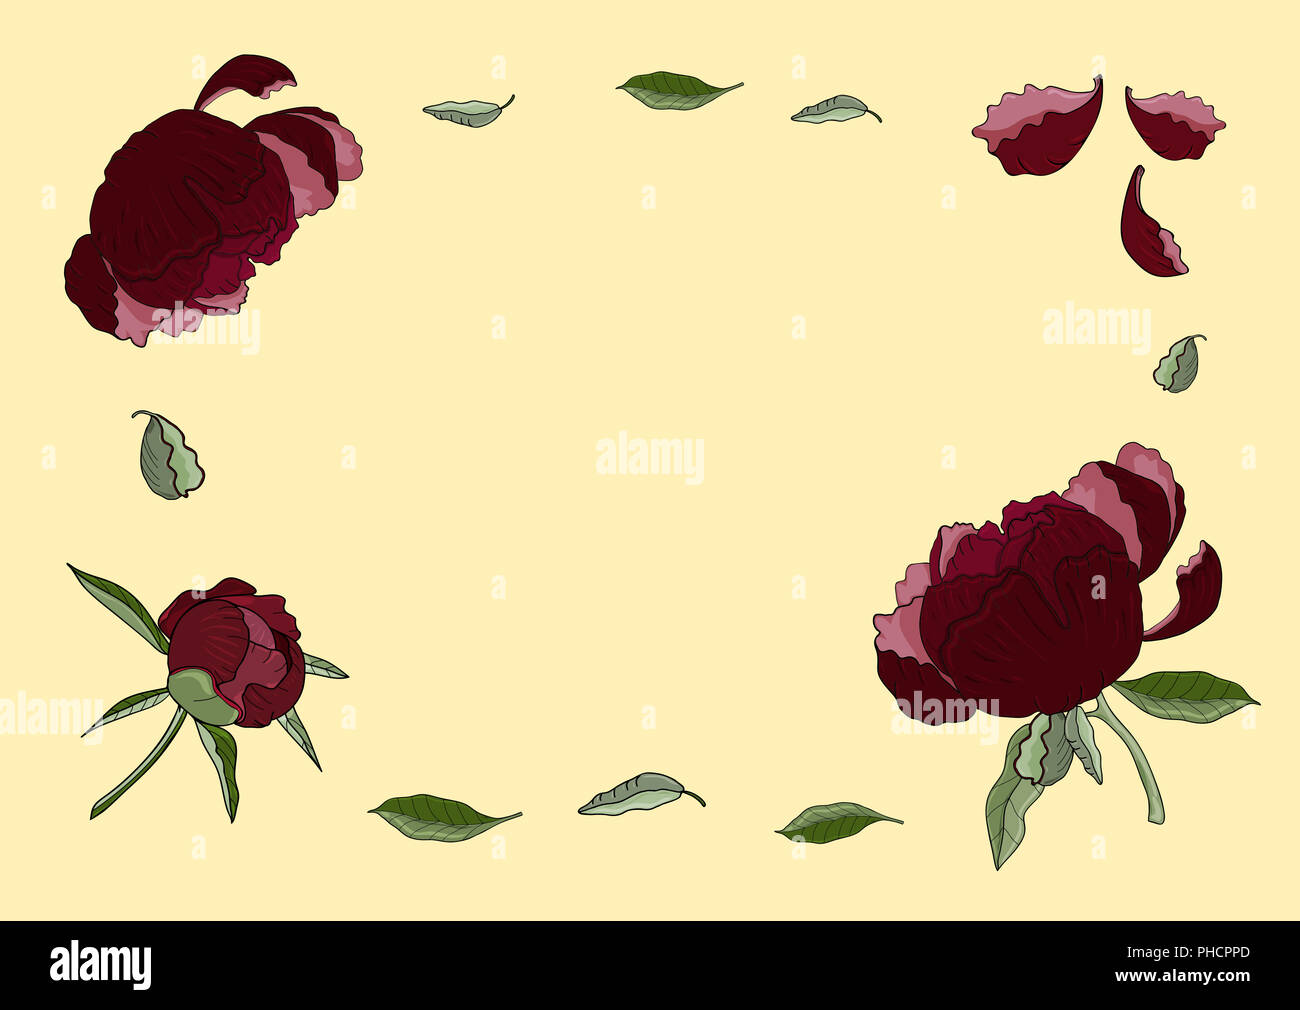 Frame of dark red peony flowers, buds and green leaves. Vintage botanical illustration of beautiful plants isolated on the light orange background. Fo Stock Photo